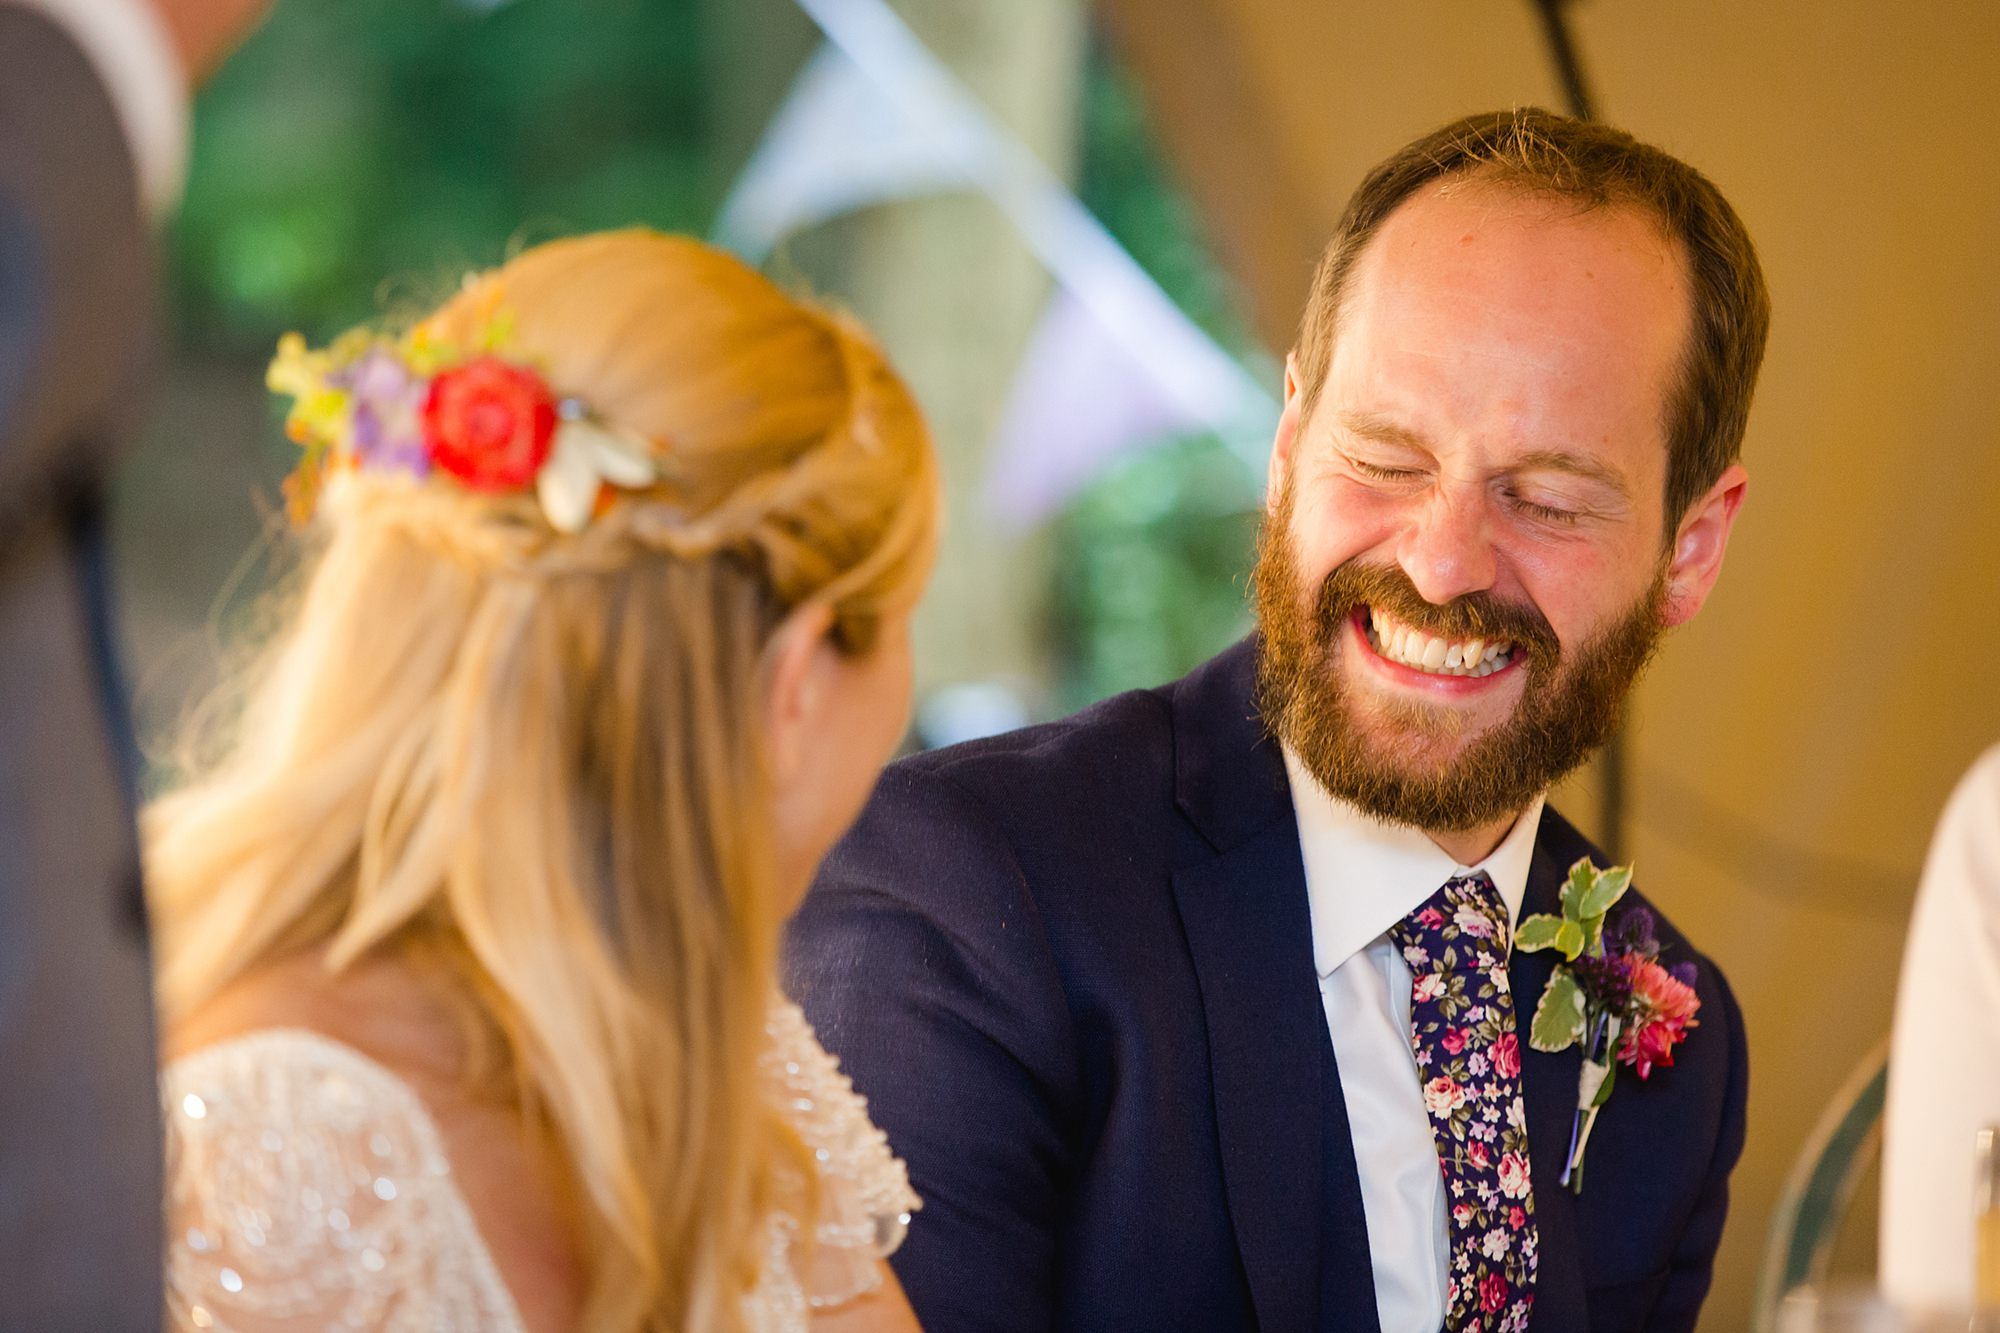 Woodland Weddings Tring groom cringes during speech